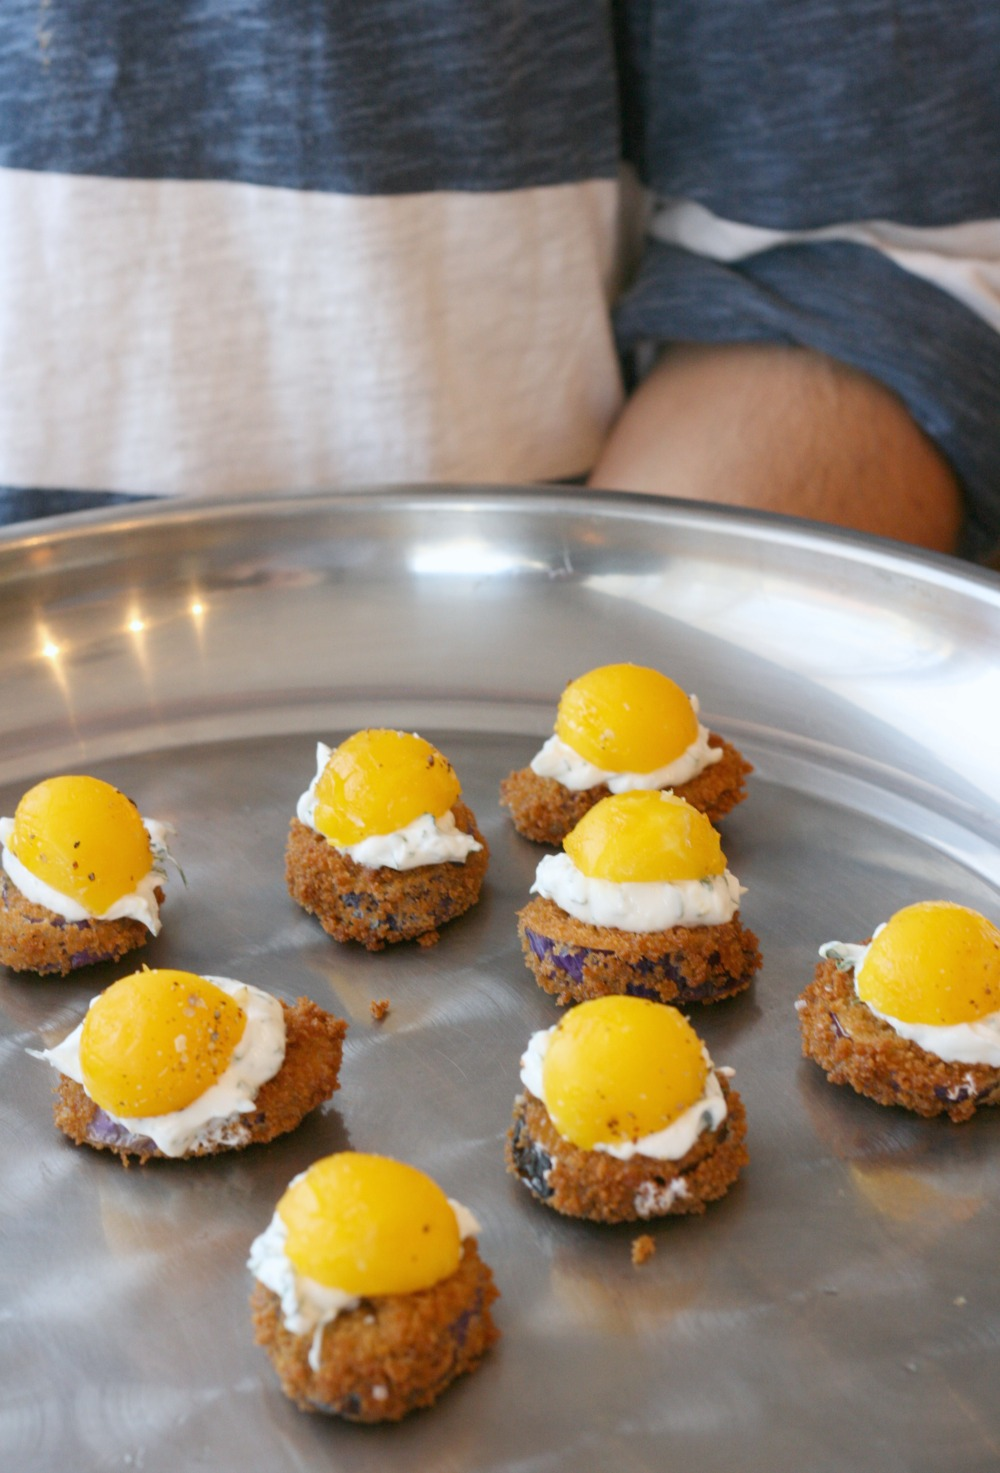 farm to chef platter fried eggplant topped with herbed yogurt and smoked egg yolk